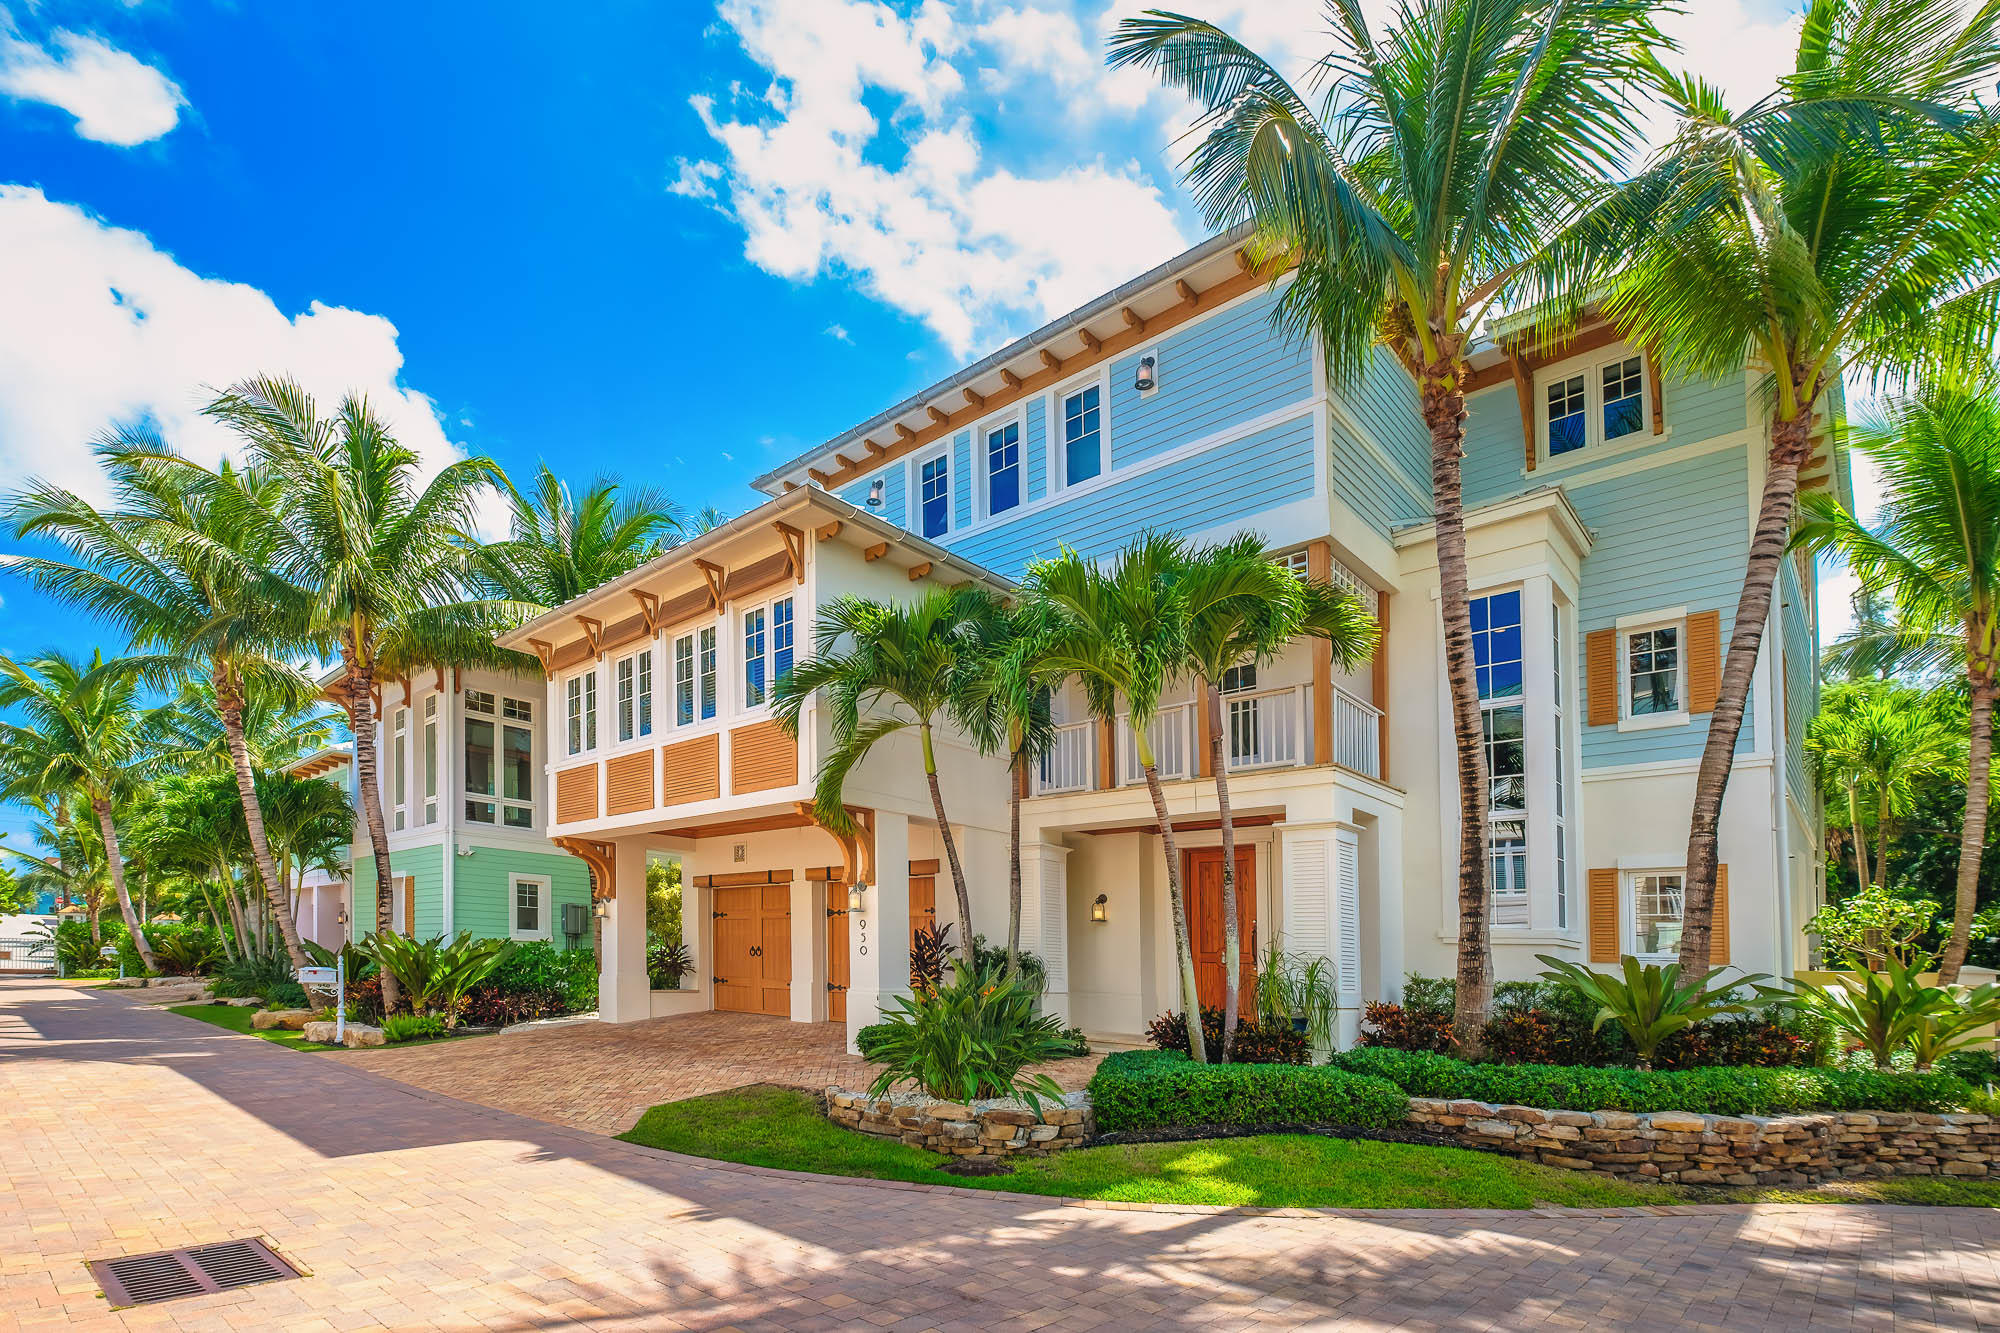 Home for sale in Lago Mar Boca Raton Florida